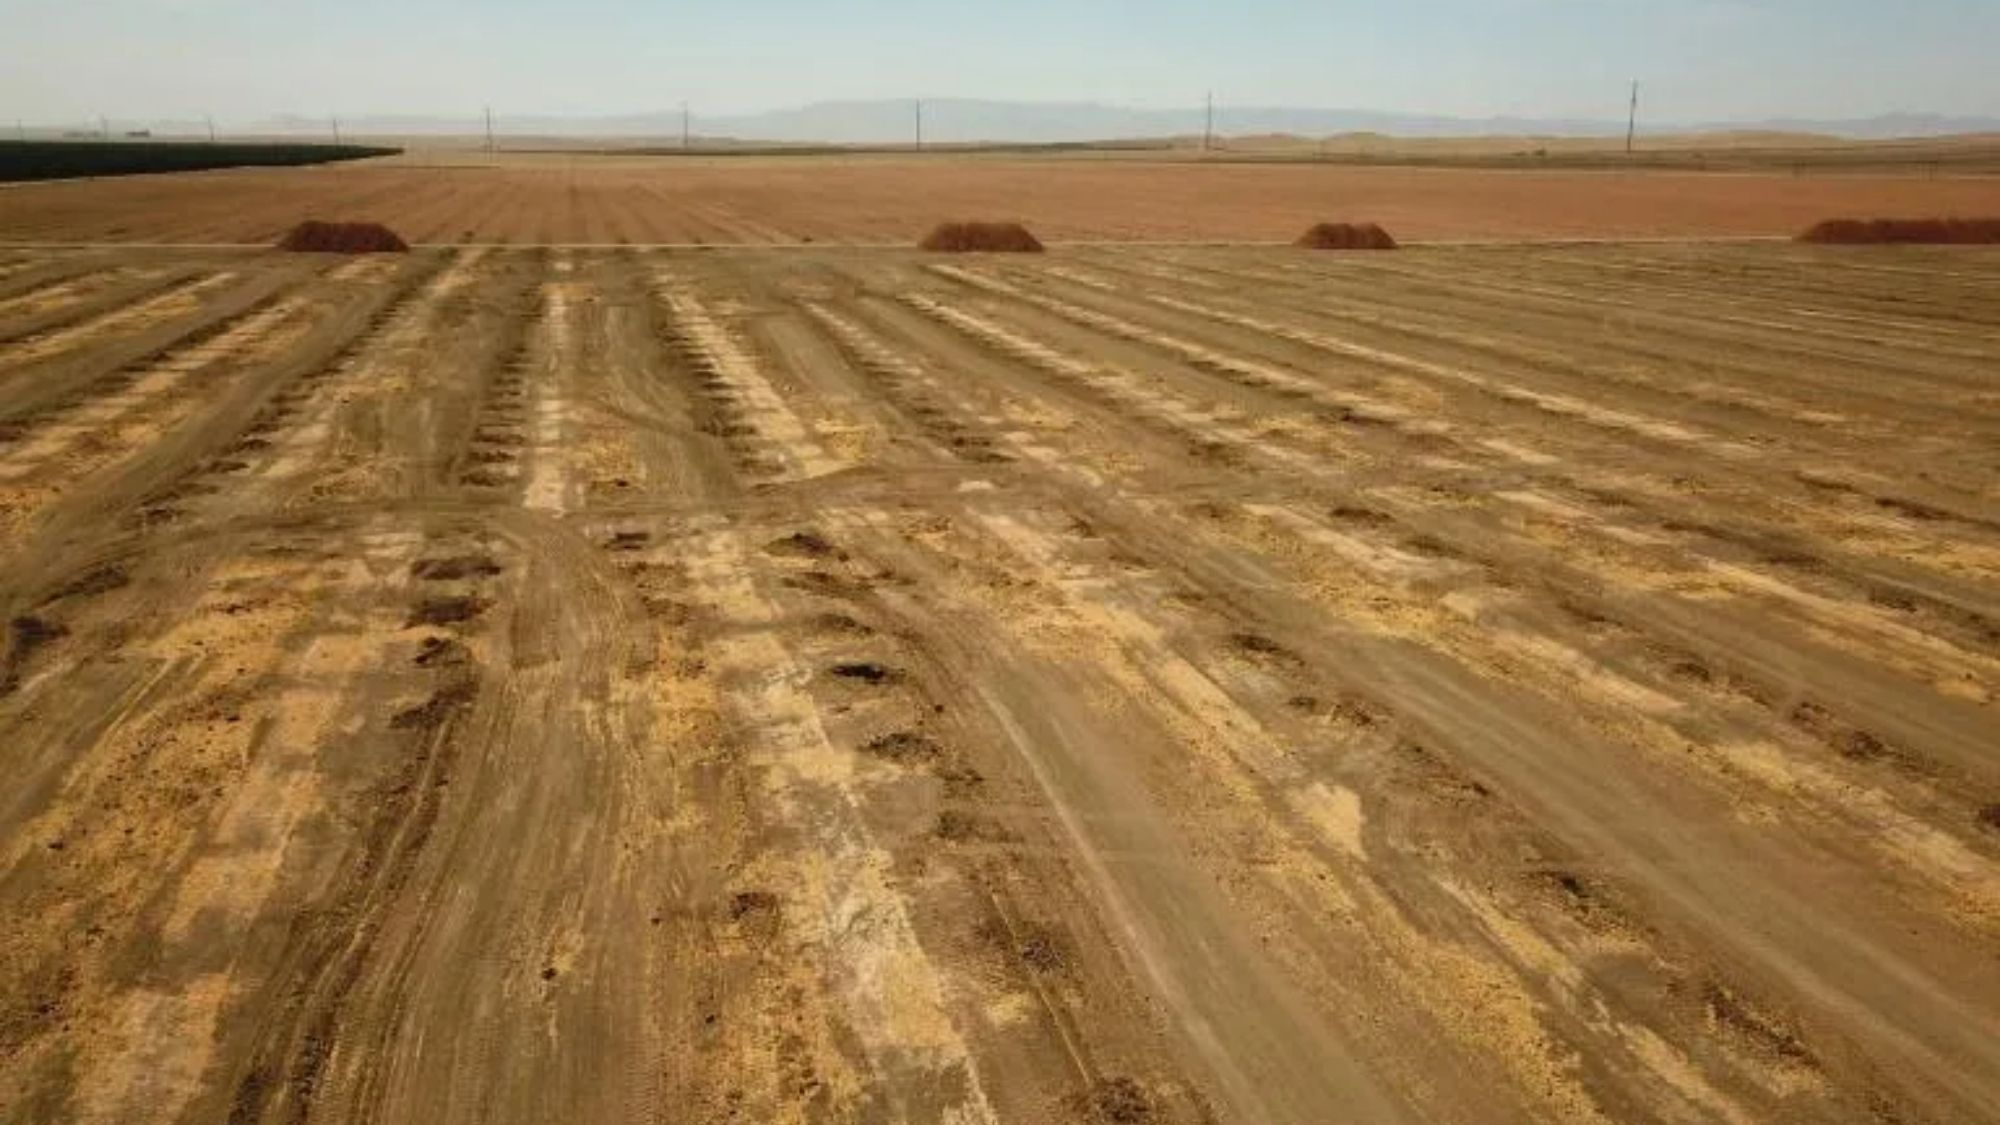 Historic drought threatens US food supplies from California farms photo from Yahoo News